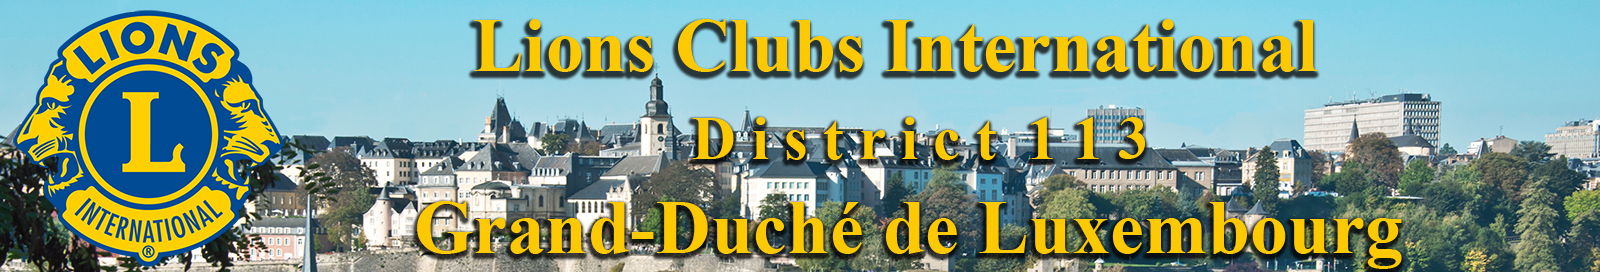 Lions Clubs Luxembourg District 113